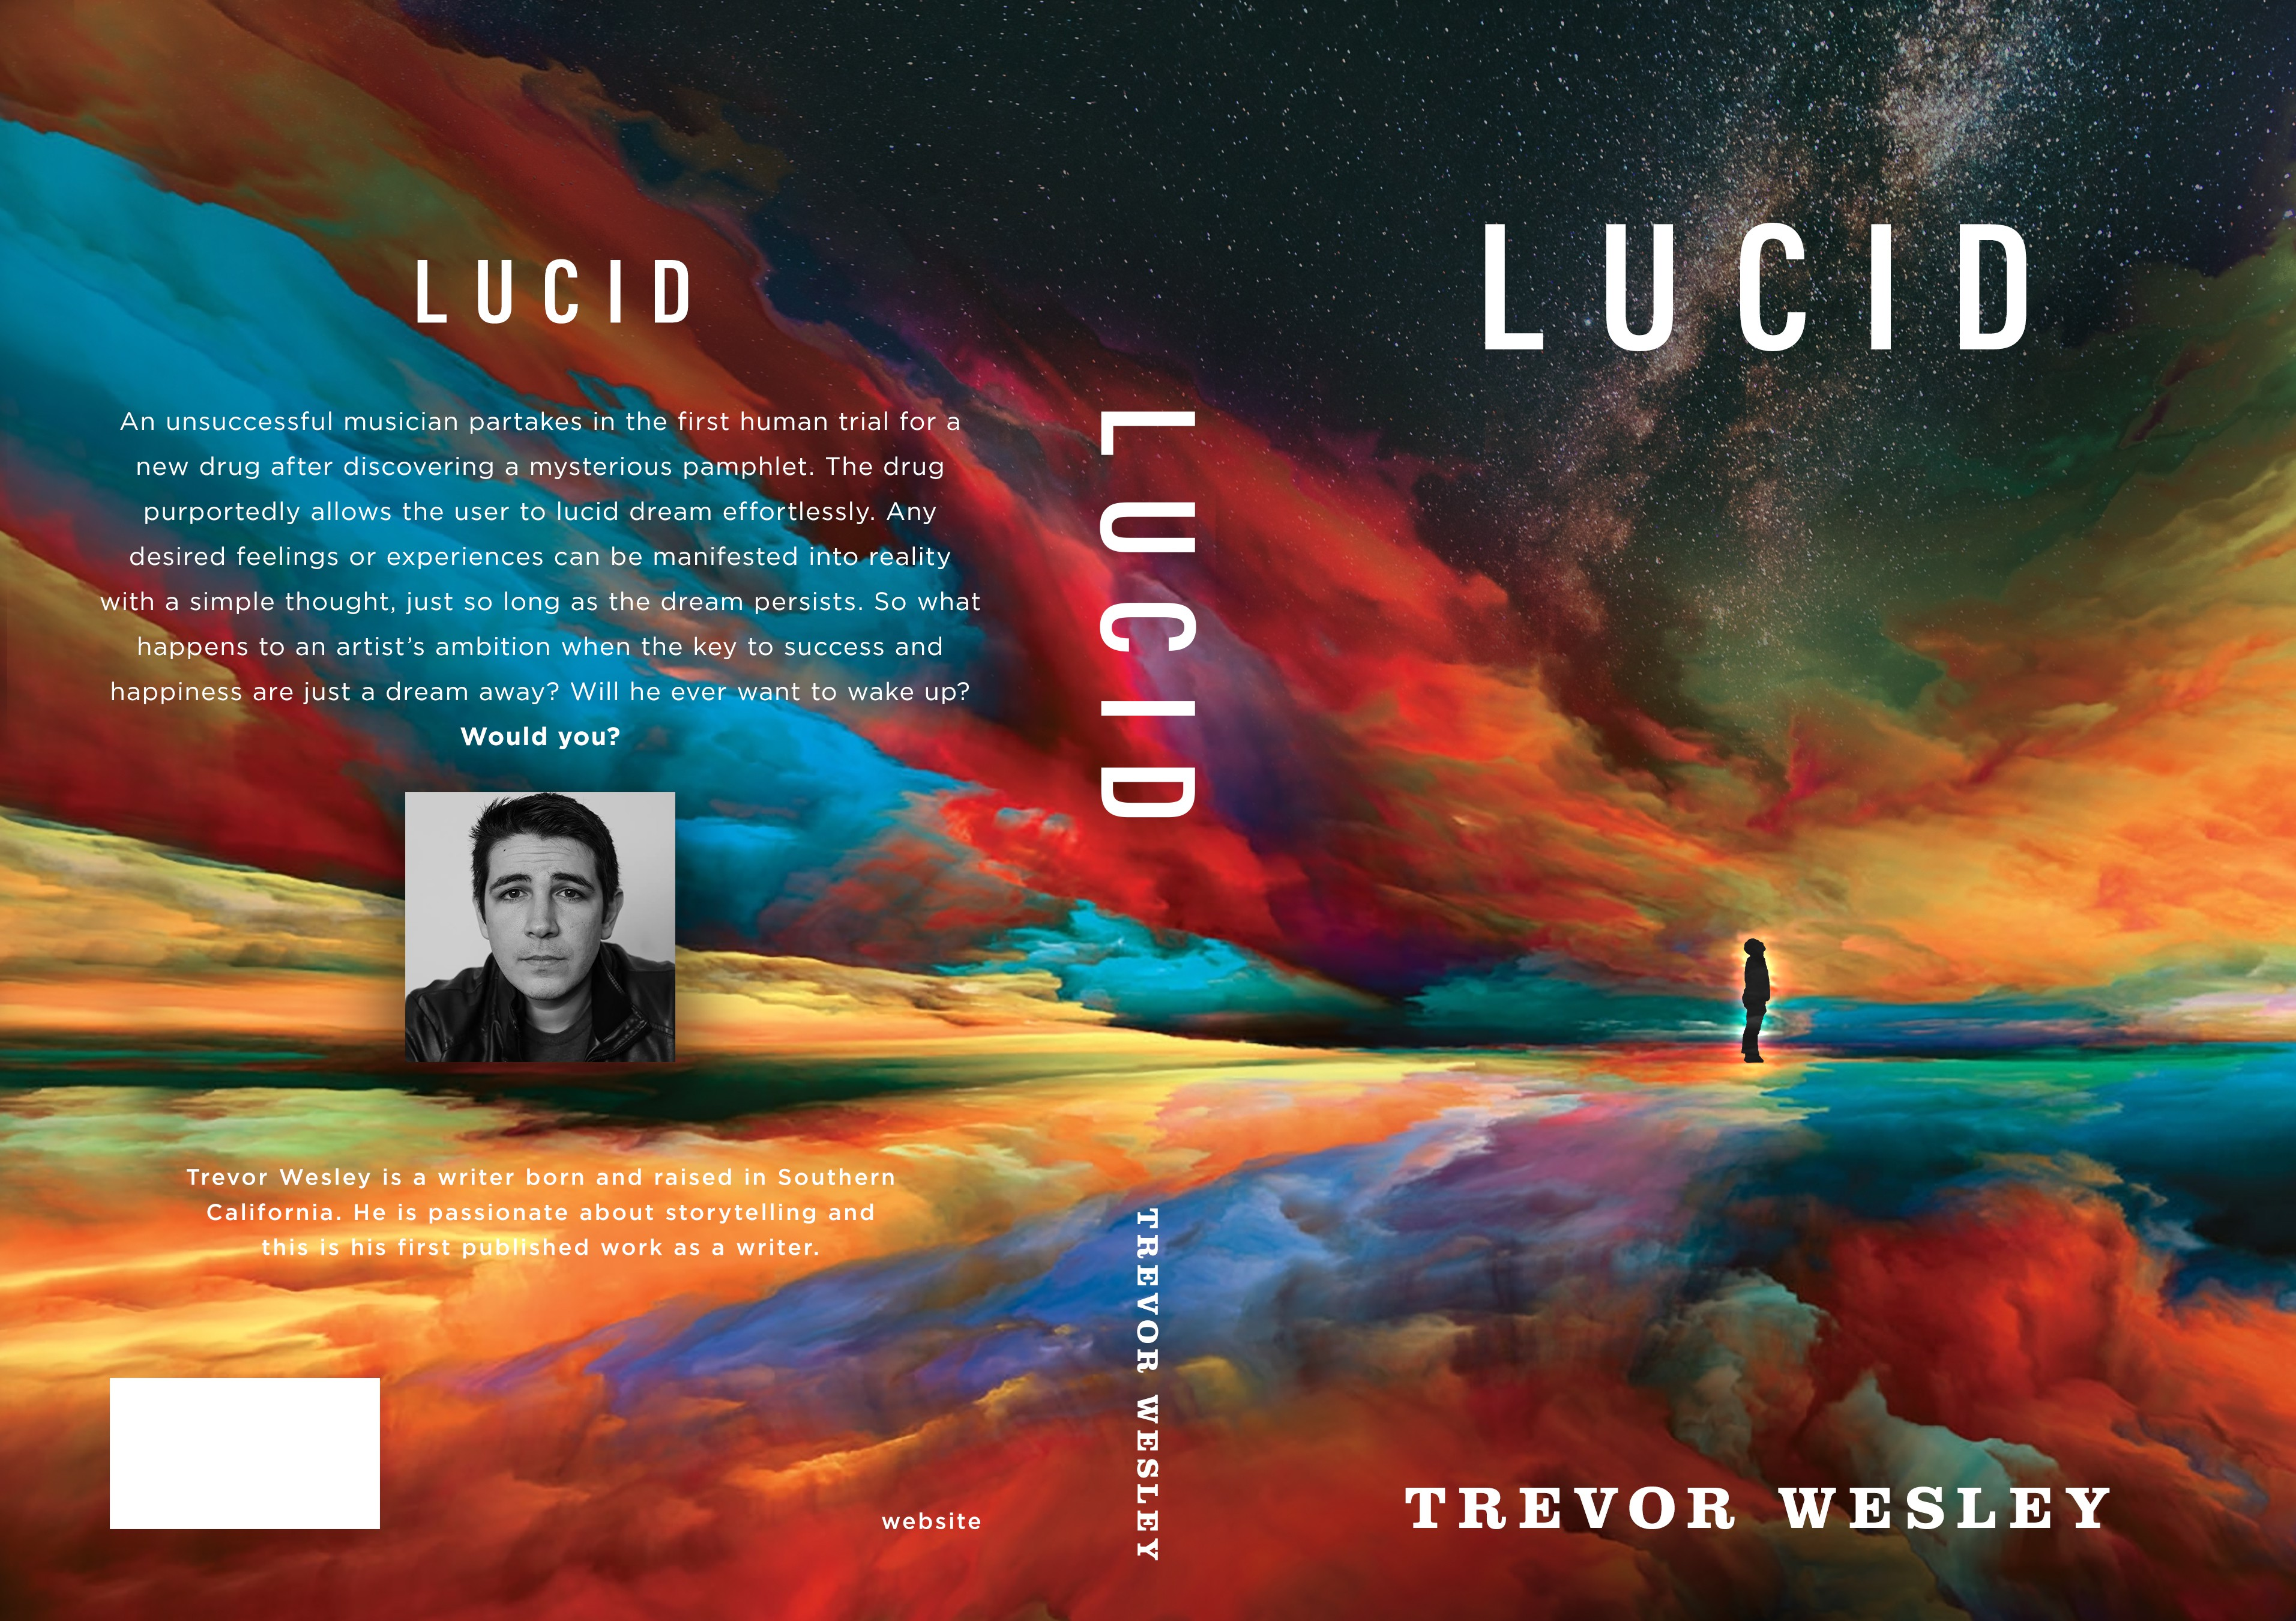 Design a cover for a book that visualizes what creativity looks like